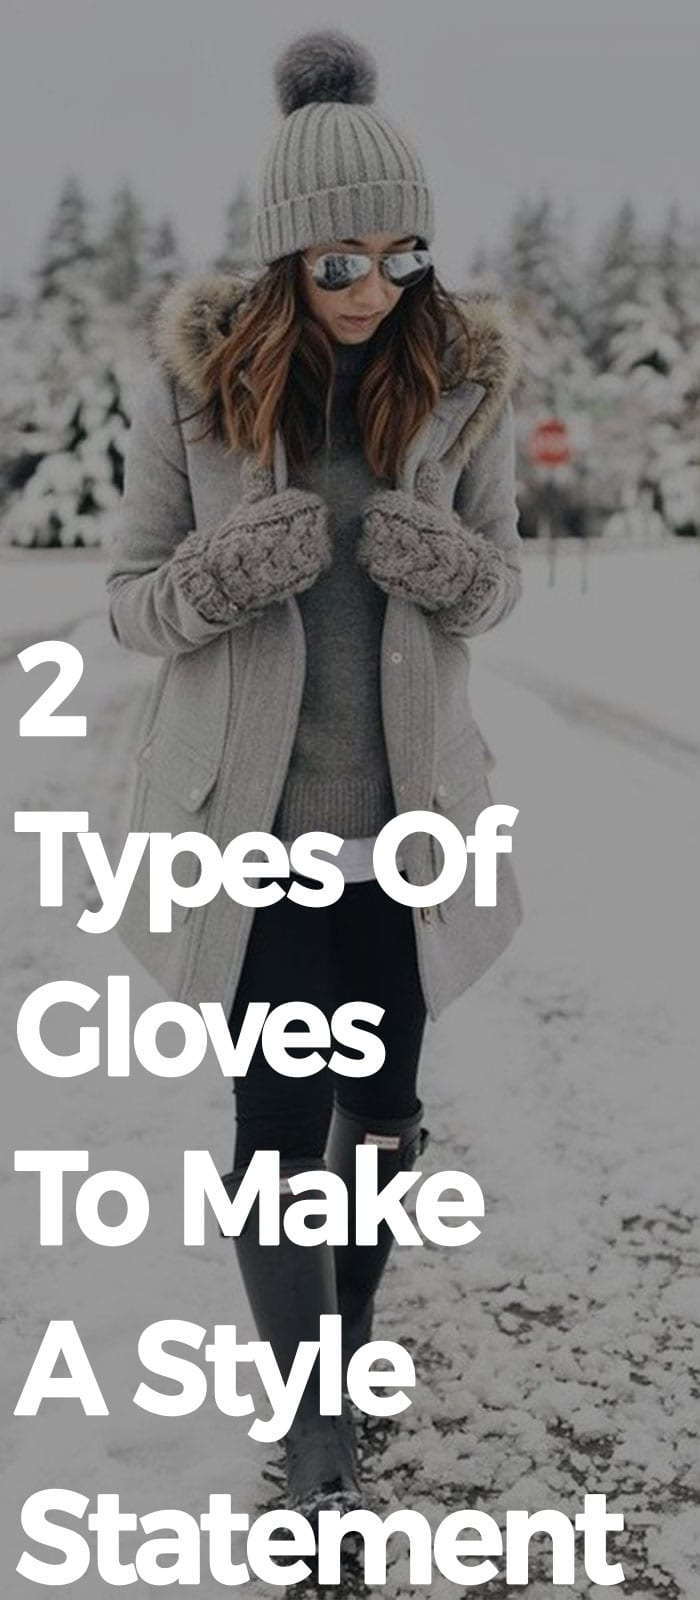 2 Types Of Glove To Make A Style Statement